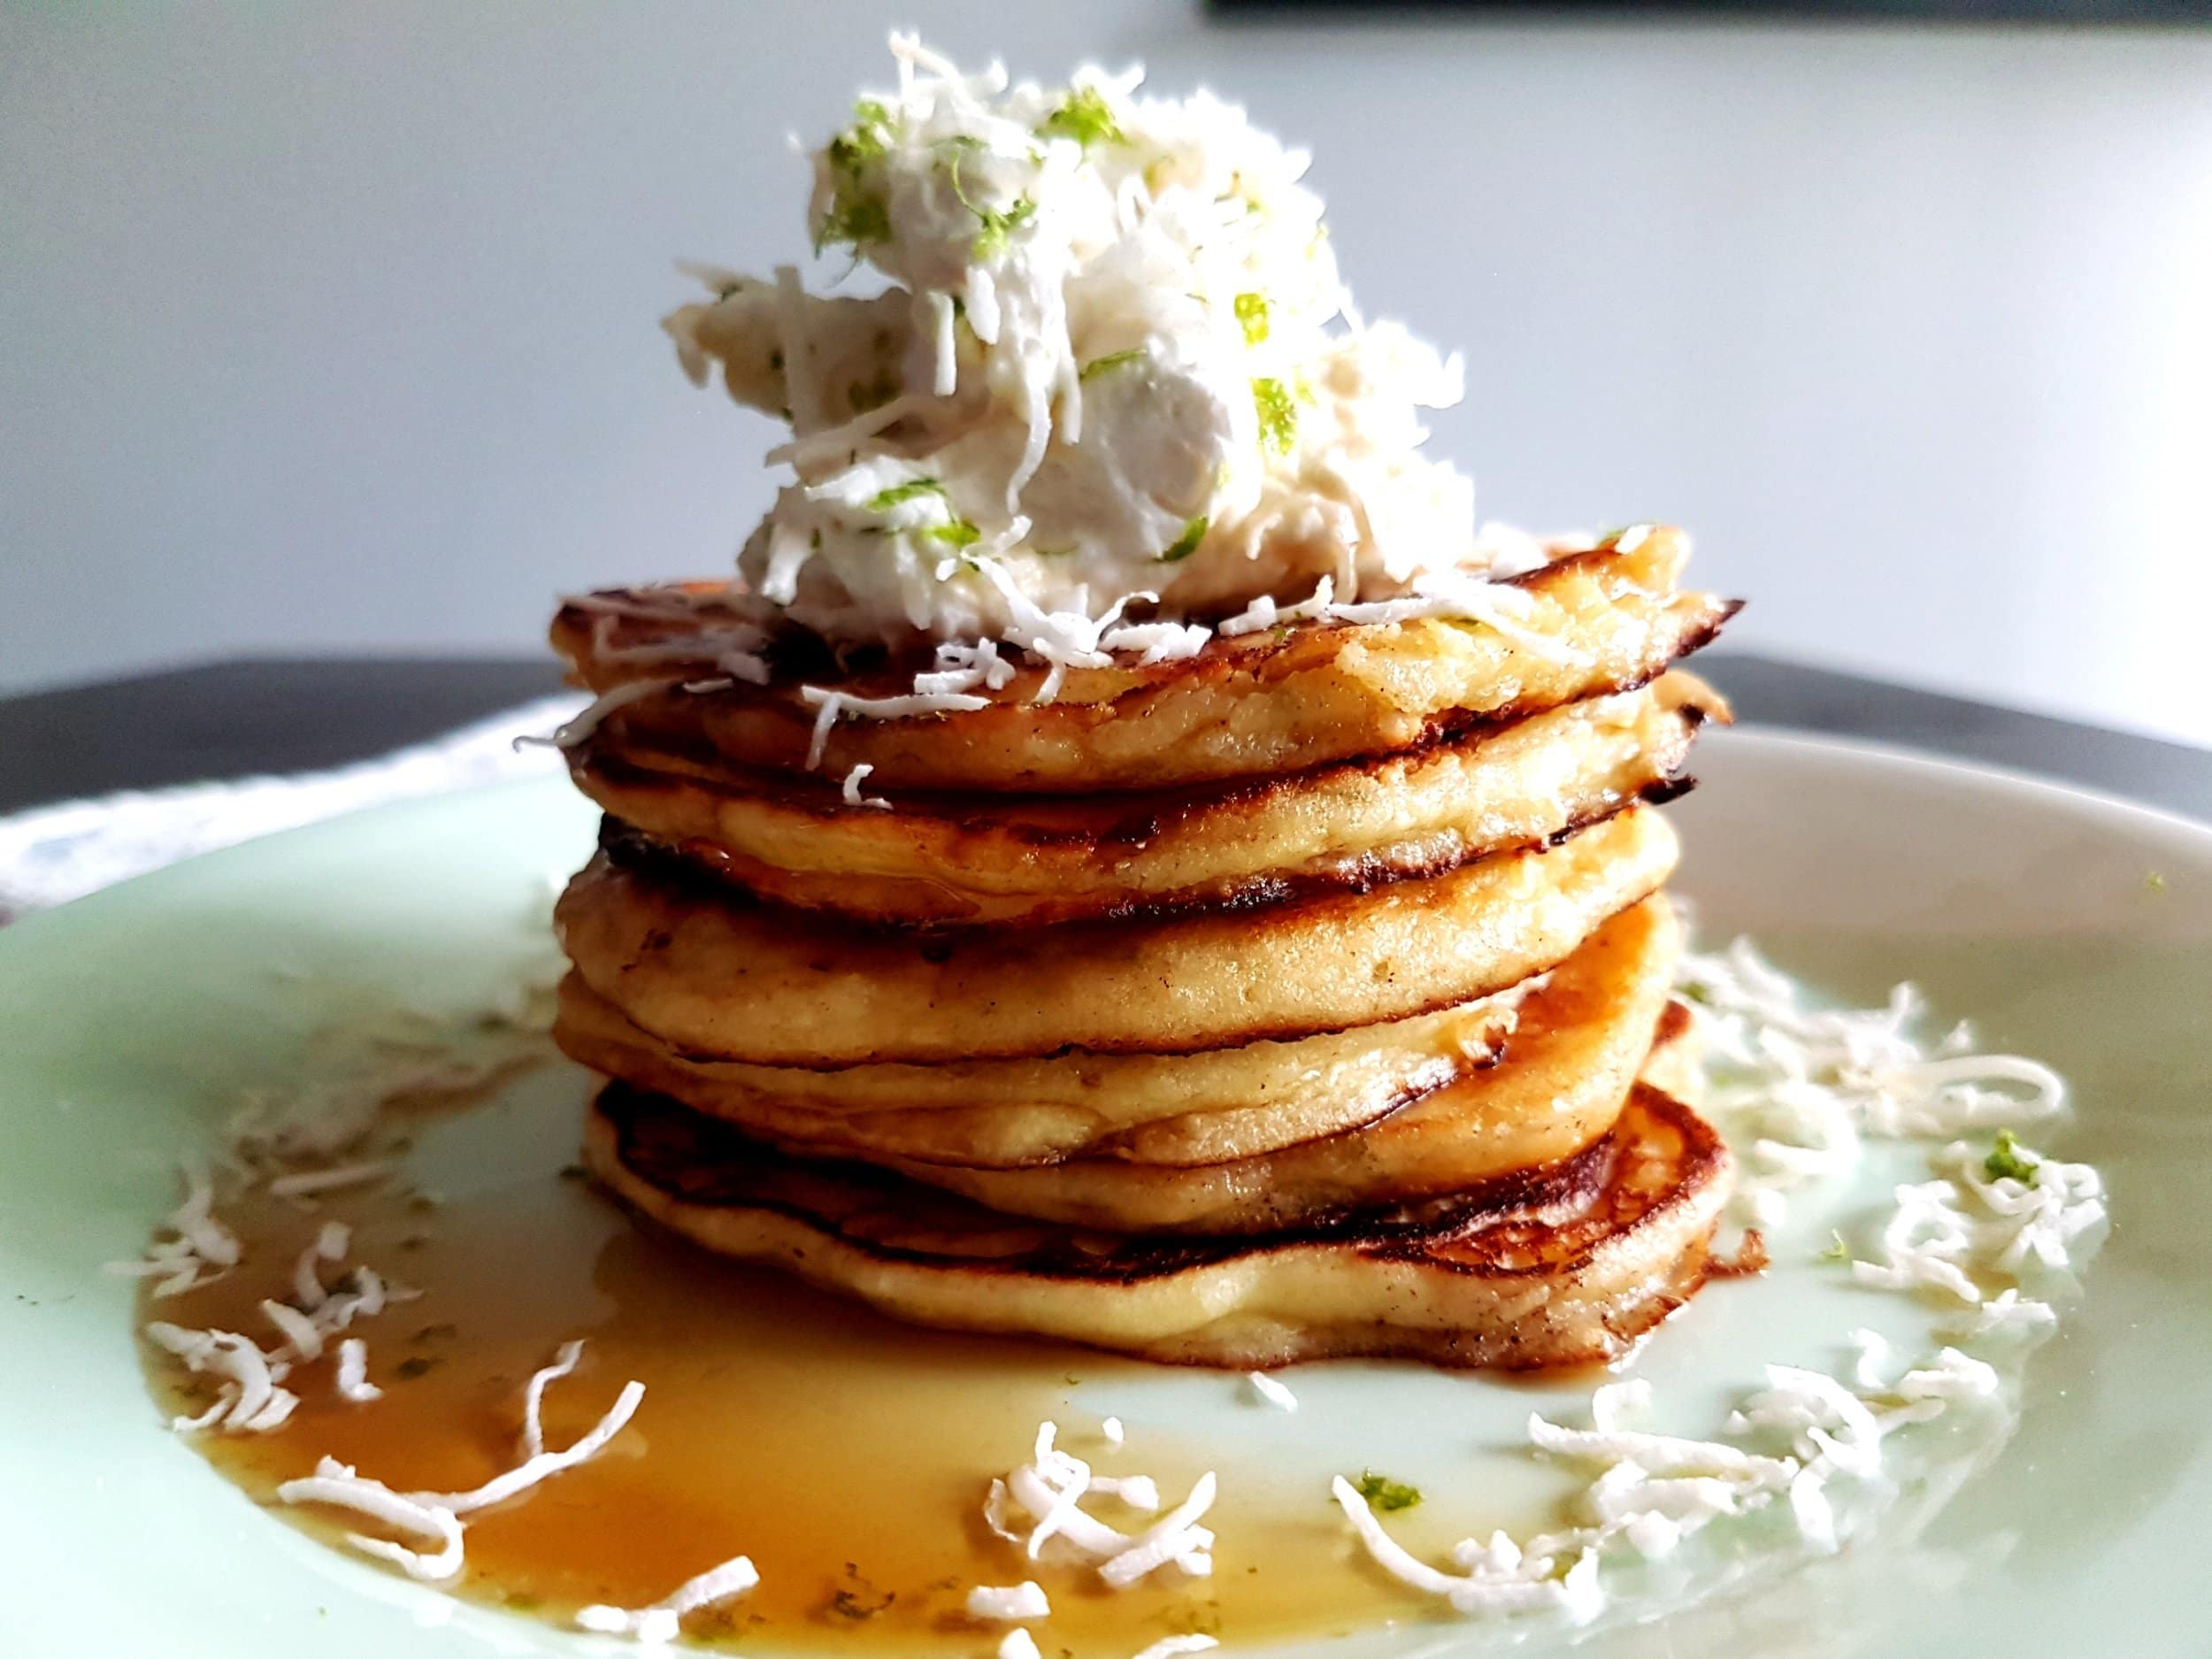 A stack of ricotta pancakes topped with coconut and lime whipped cream.